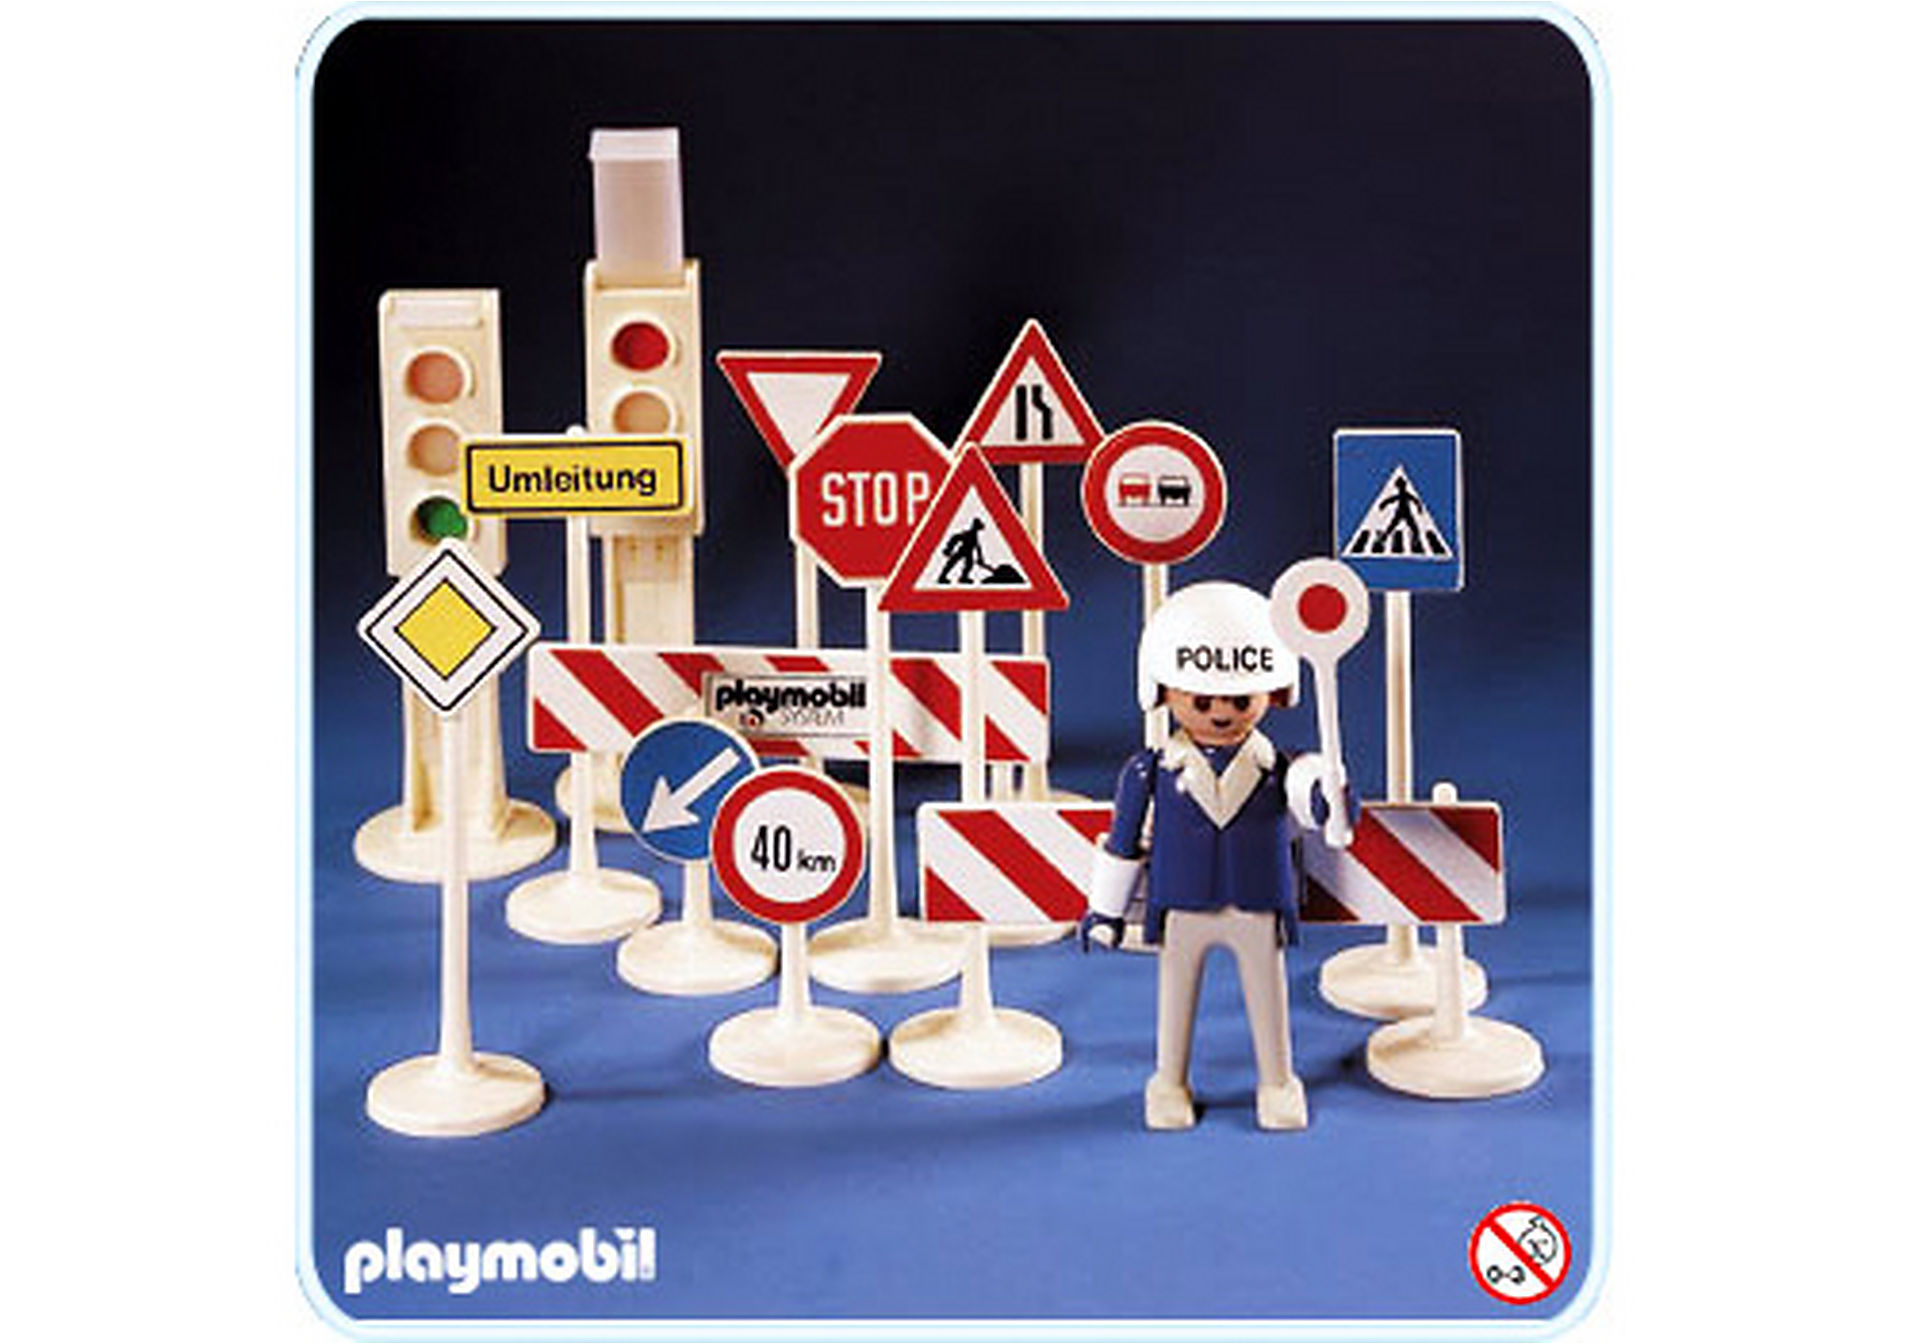 http://media.playmobil.com/i/playmobil/3204-A_product_detail/Panneaux de circulation